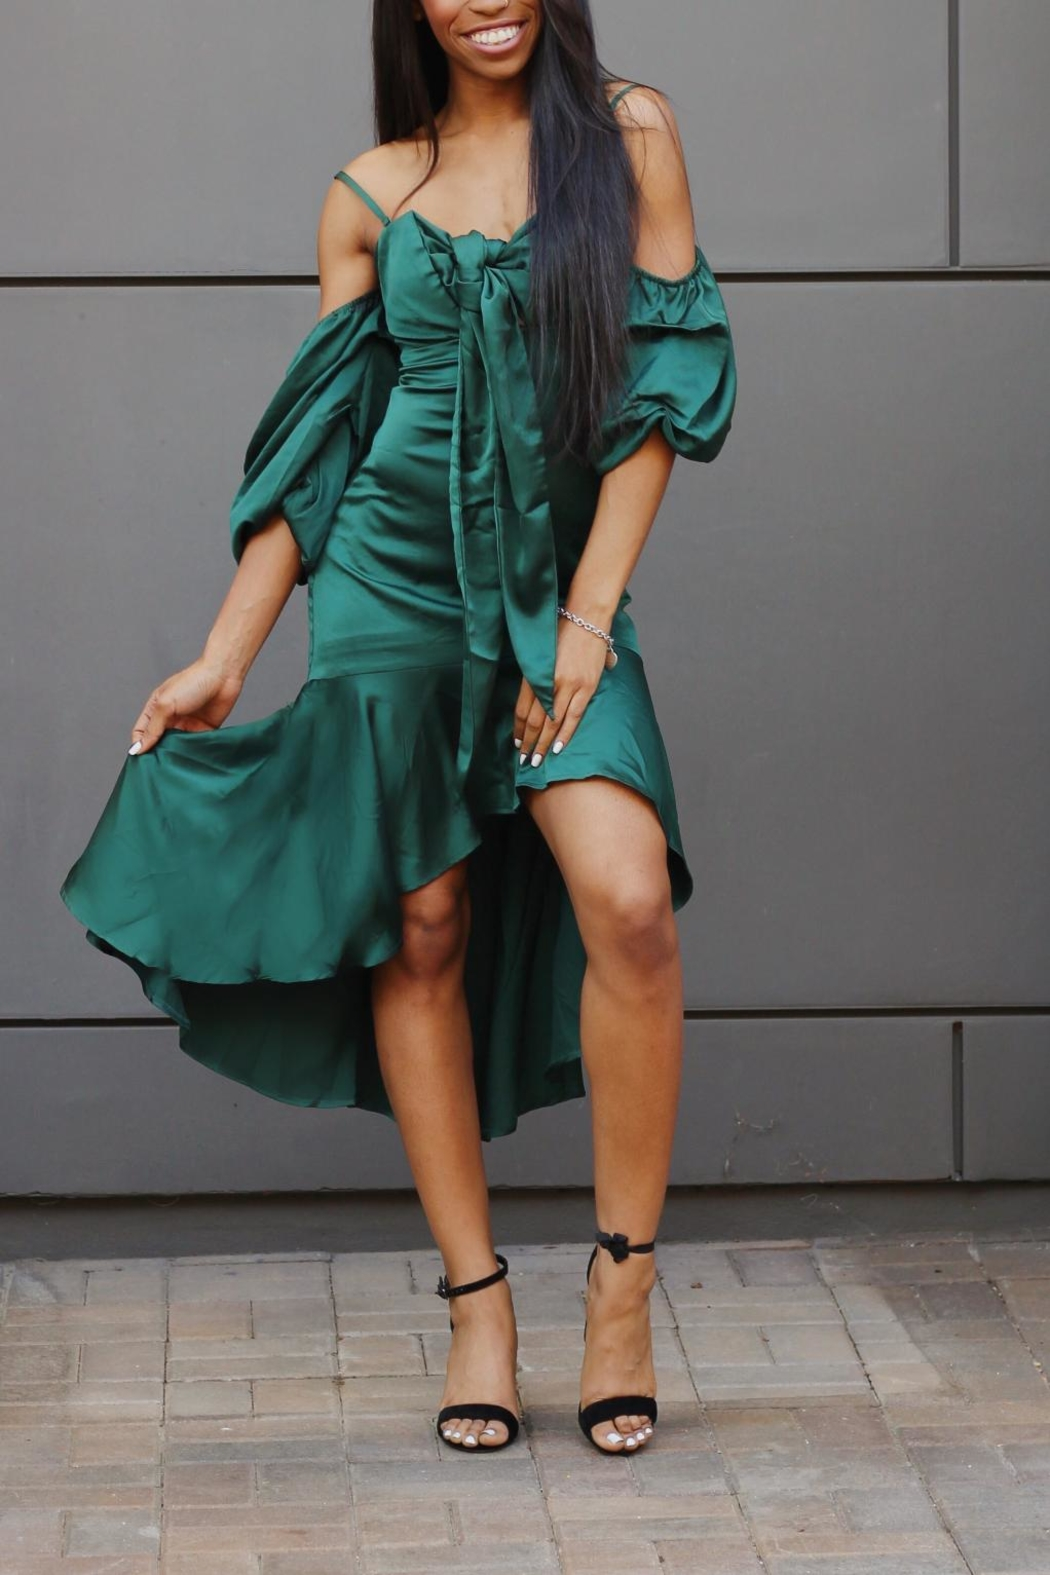 Lulumari Green Silky Dress - Main Image